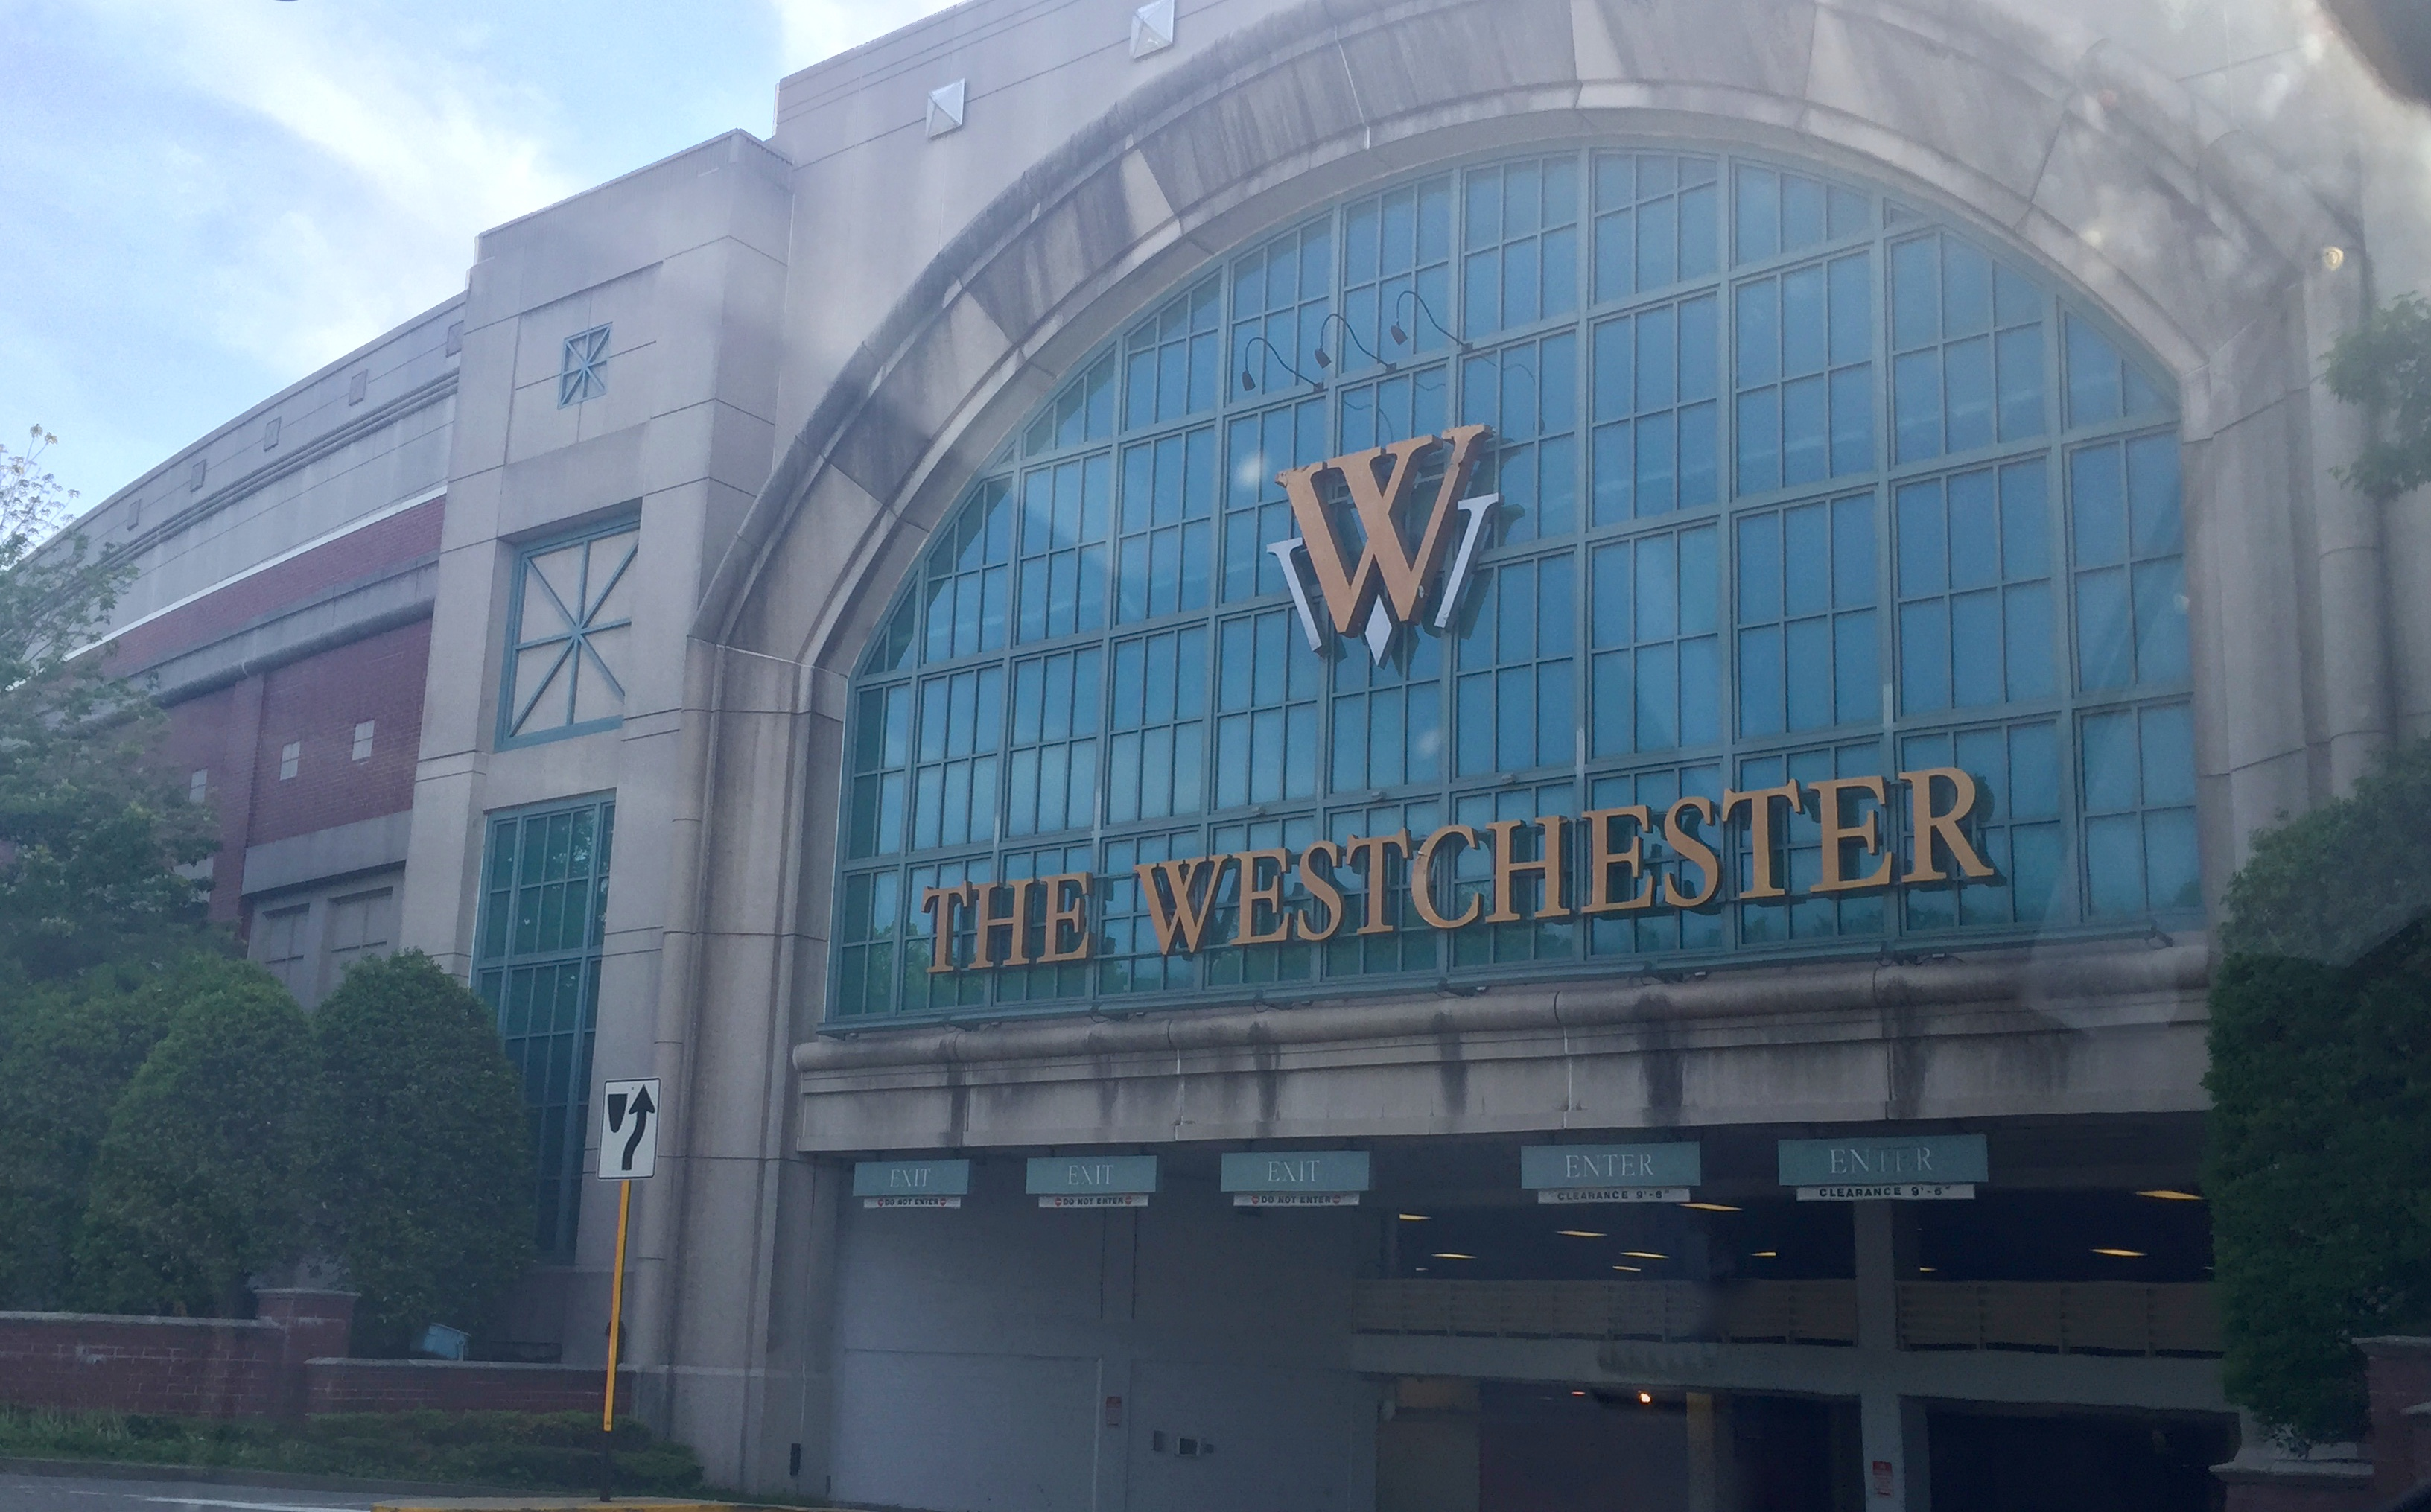 The Westchester - Wikiwand